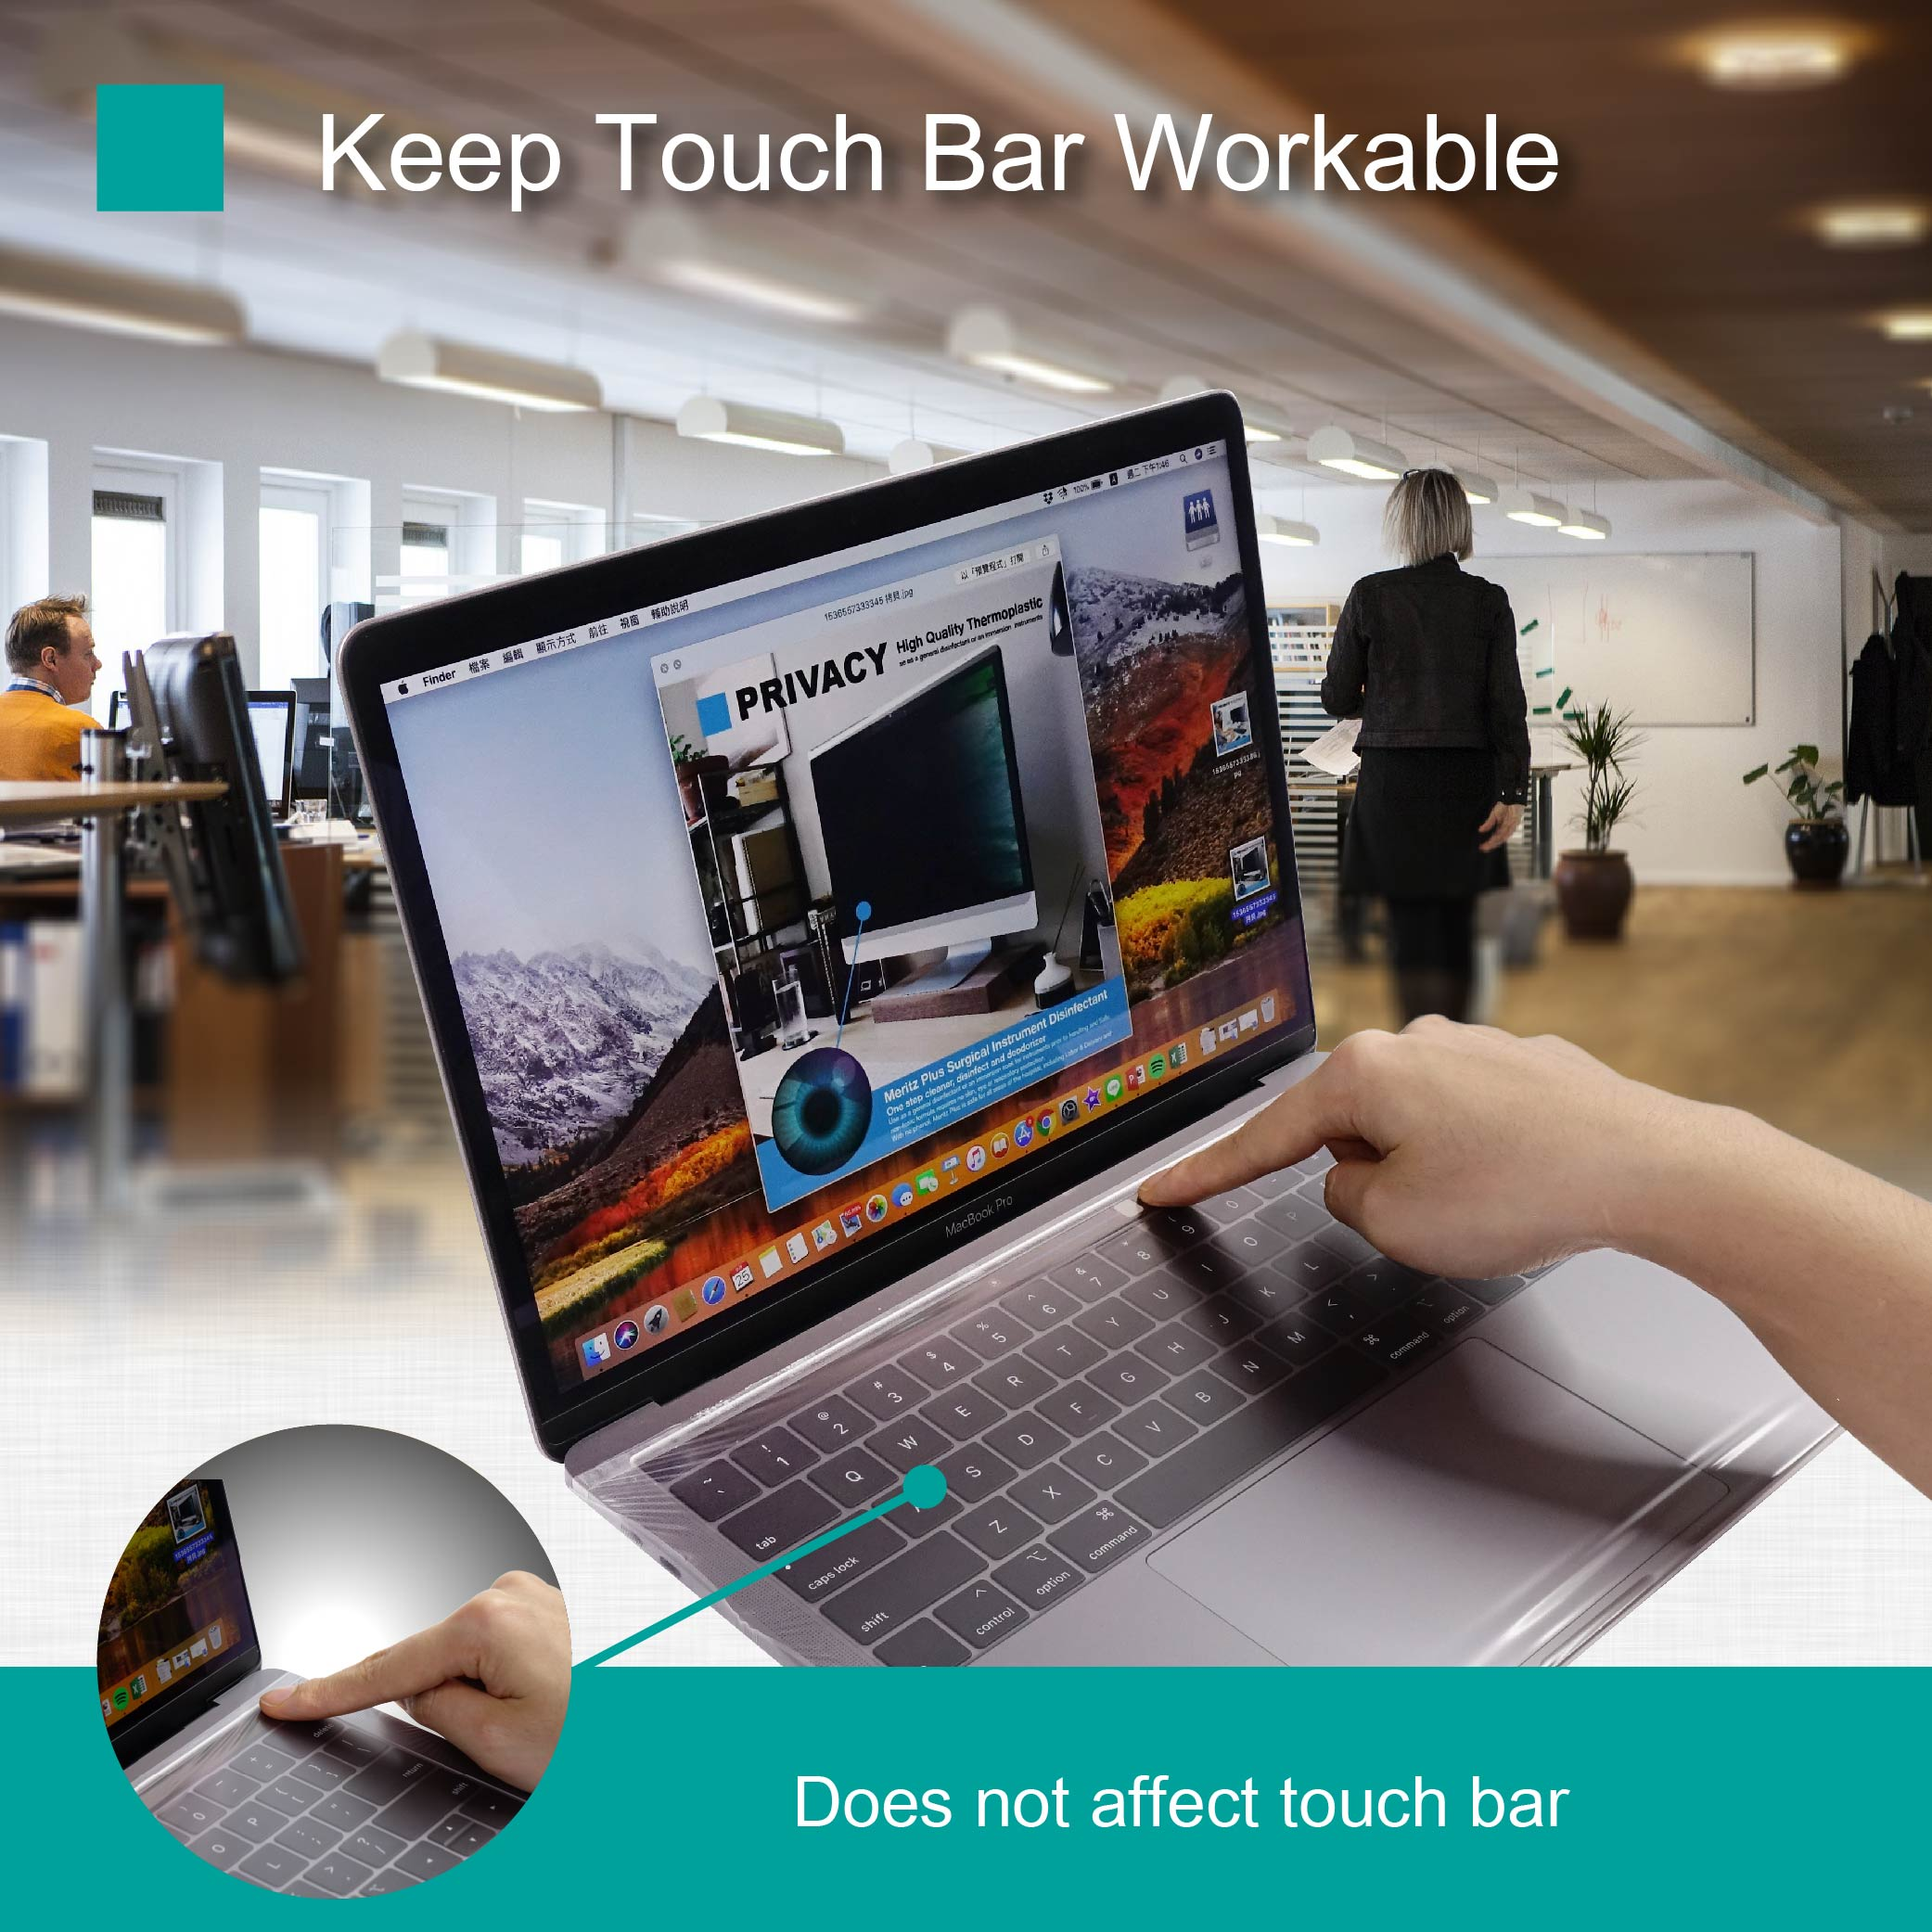 Macbook Pro touch bar workable